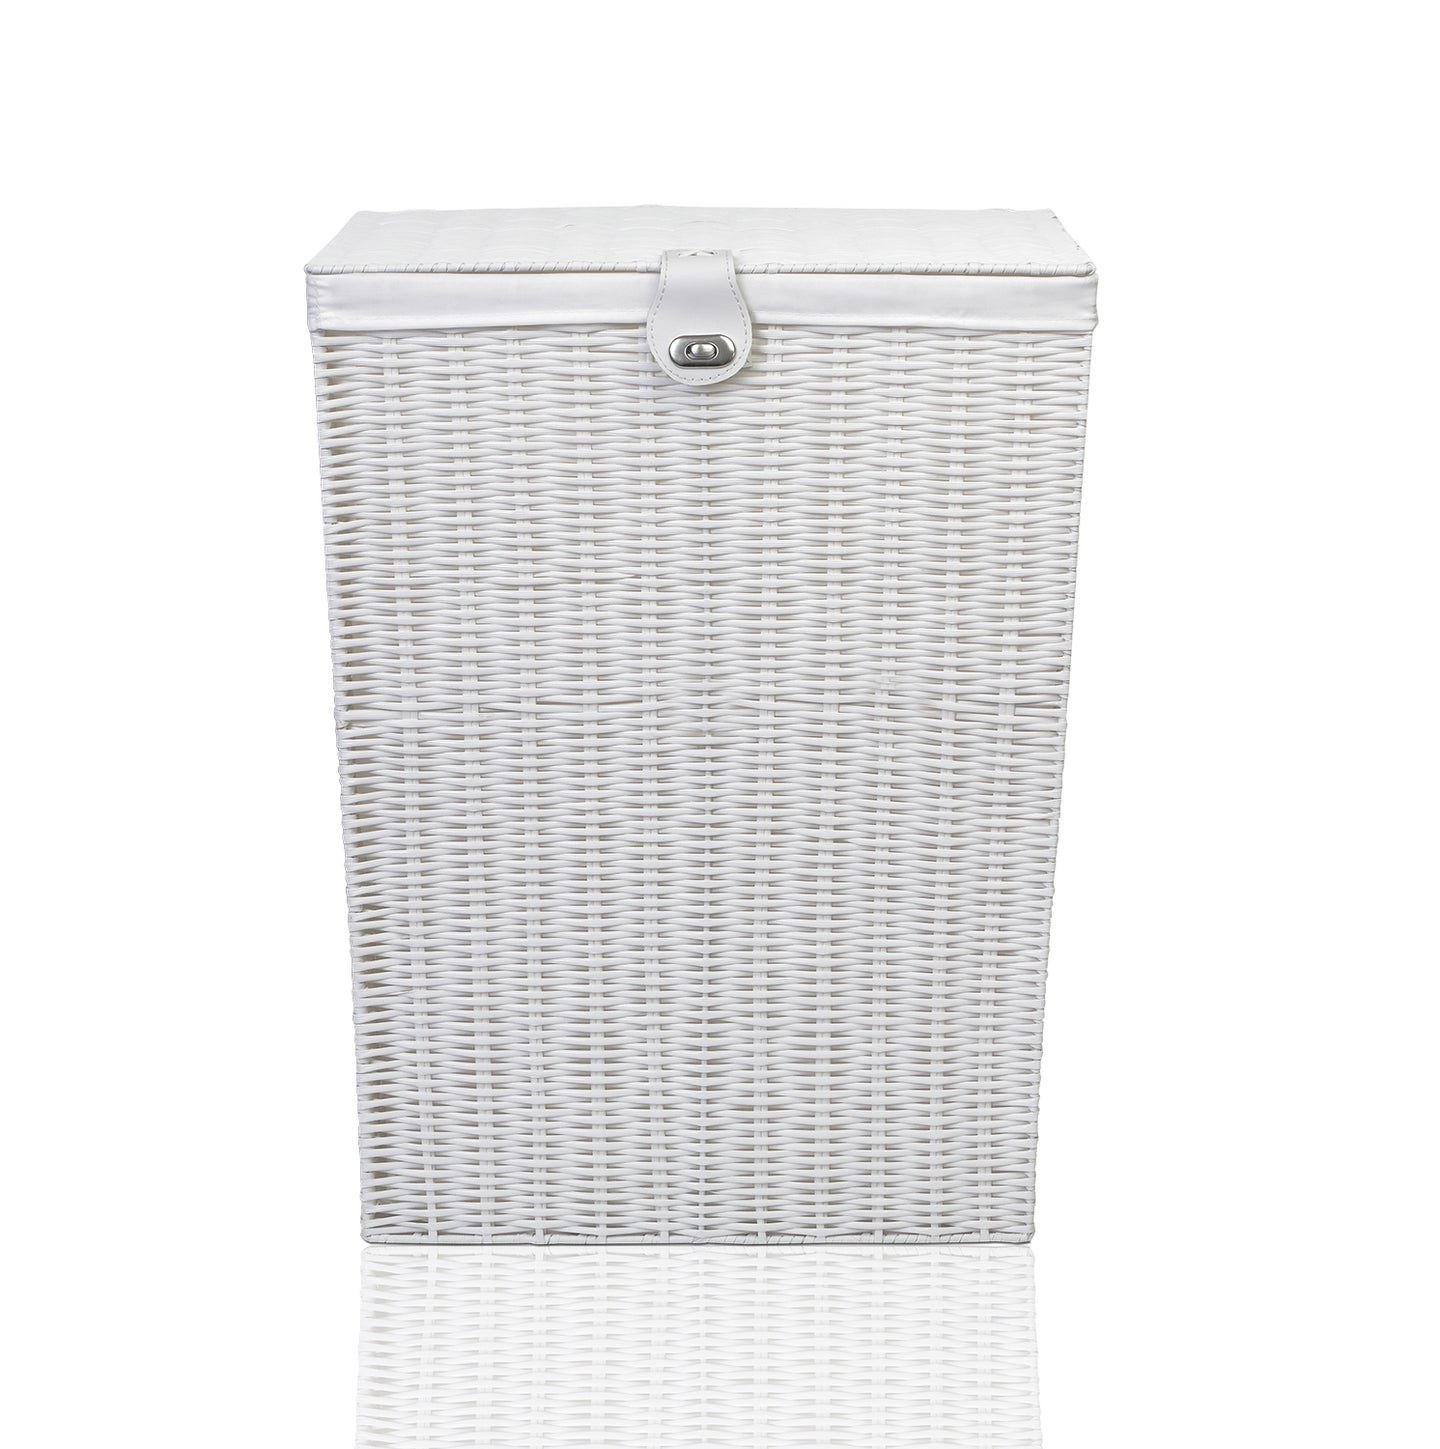 Arpan Medium Resin Laundry Clothes Basket with Lid and Lining Storage Basket with Removable Lining